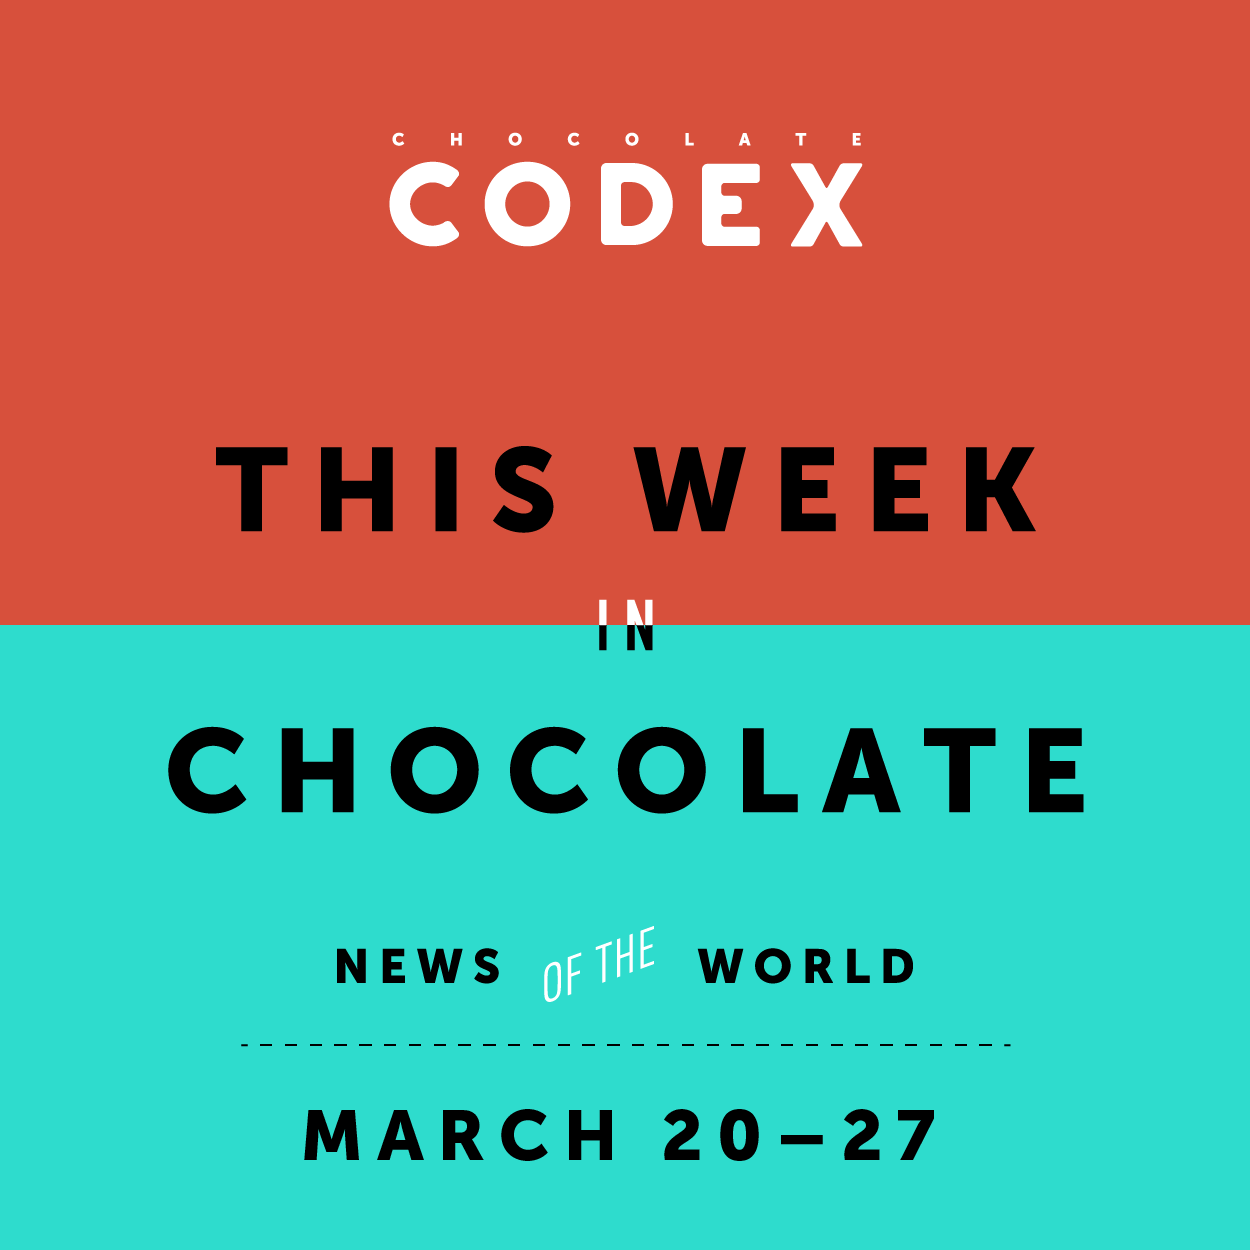 ChocolateCodex_ThisWeek_Chocolate_News_2016_13